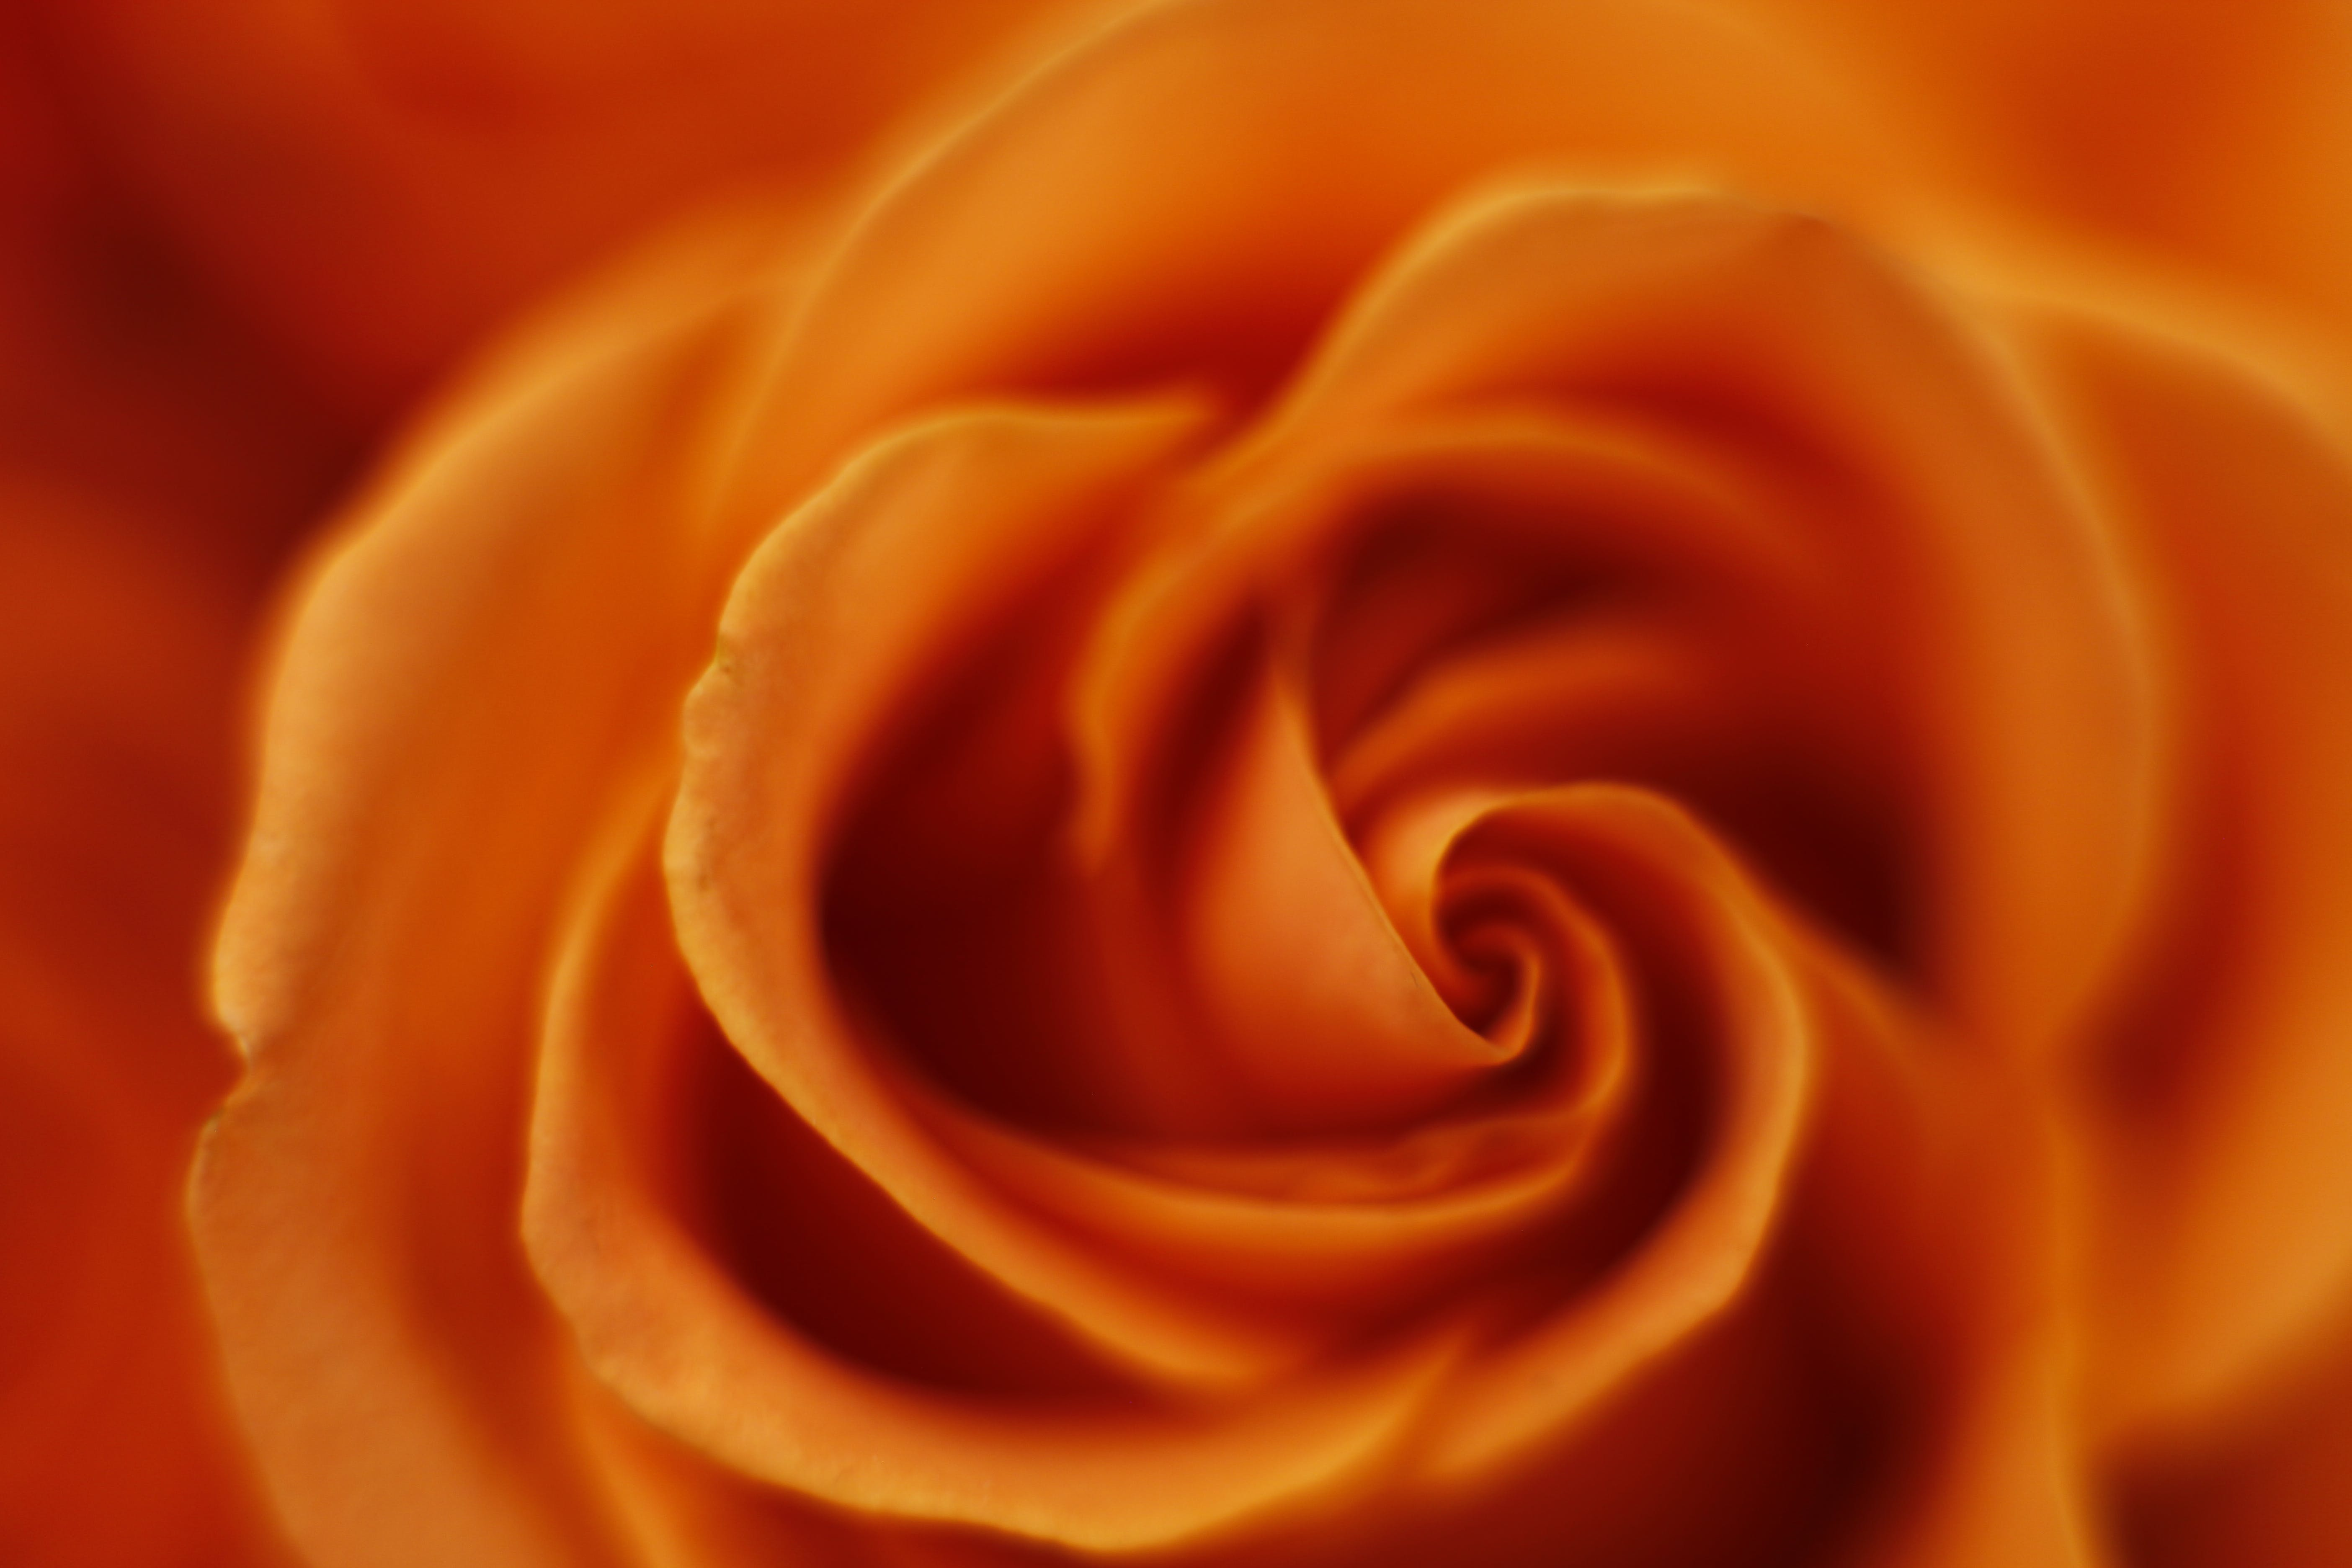 Free stock photo of flower, macro, Orange Rose, rose